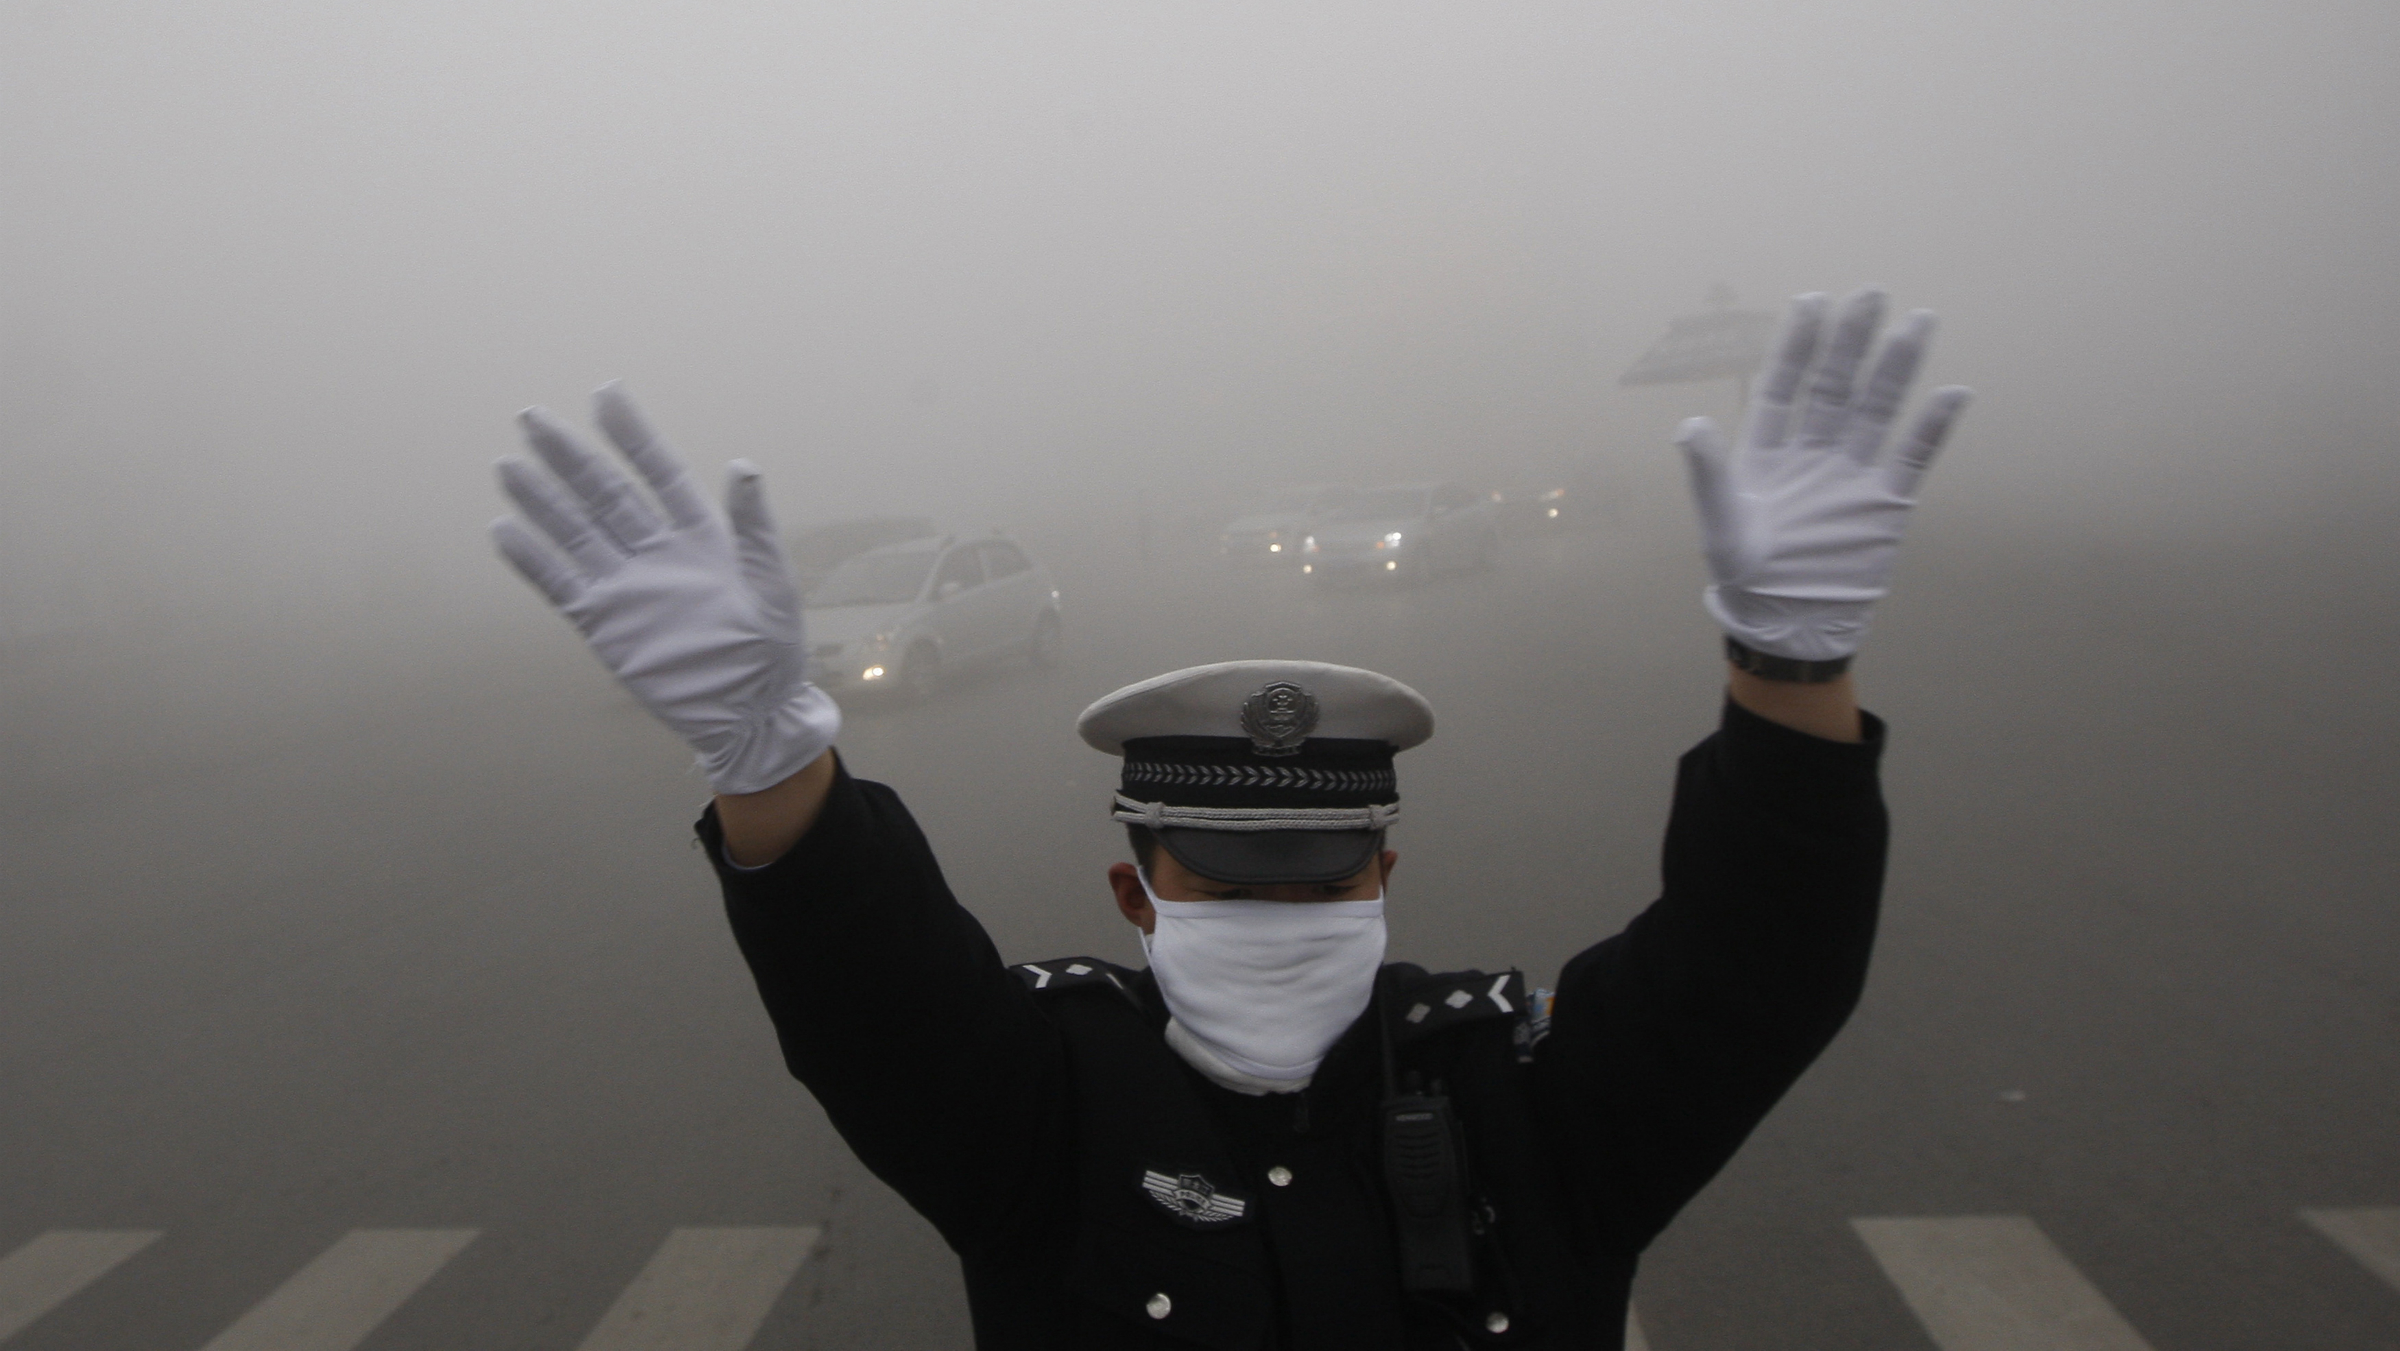 A traffic policeman signals to drivers during a smoggy day in Harbin, Heilongjiang province, October 21, 2013. The second day of heavy smog with a PM 2.5 index has forced the closure of schools and highways, exceeding 500 micrograms per cubic meter on Monday morning in downtown Harbin, according to Xinhua News Agency. REUTERS/China Daily